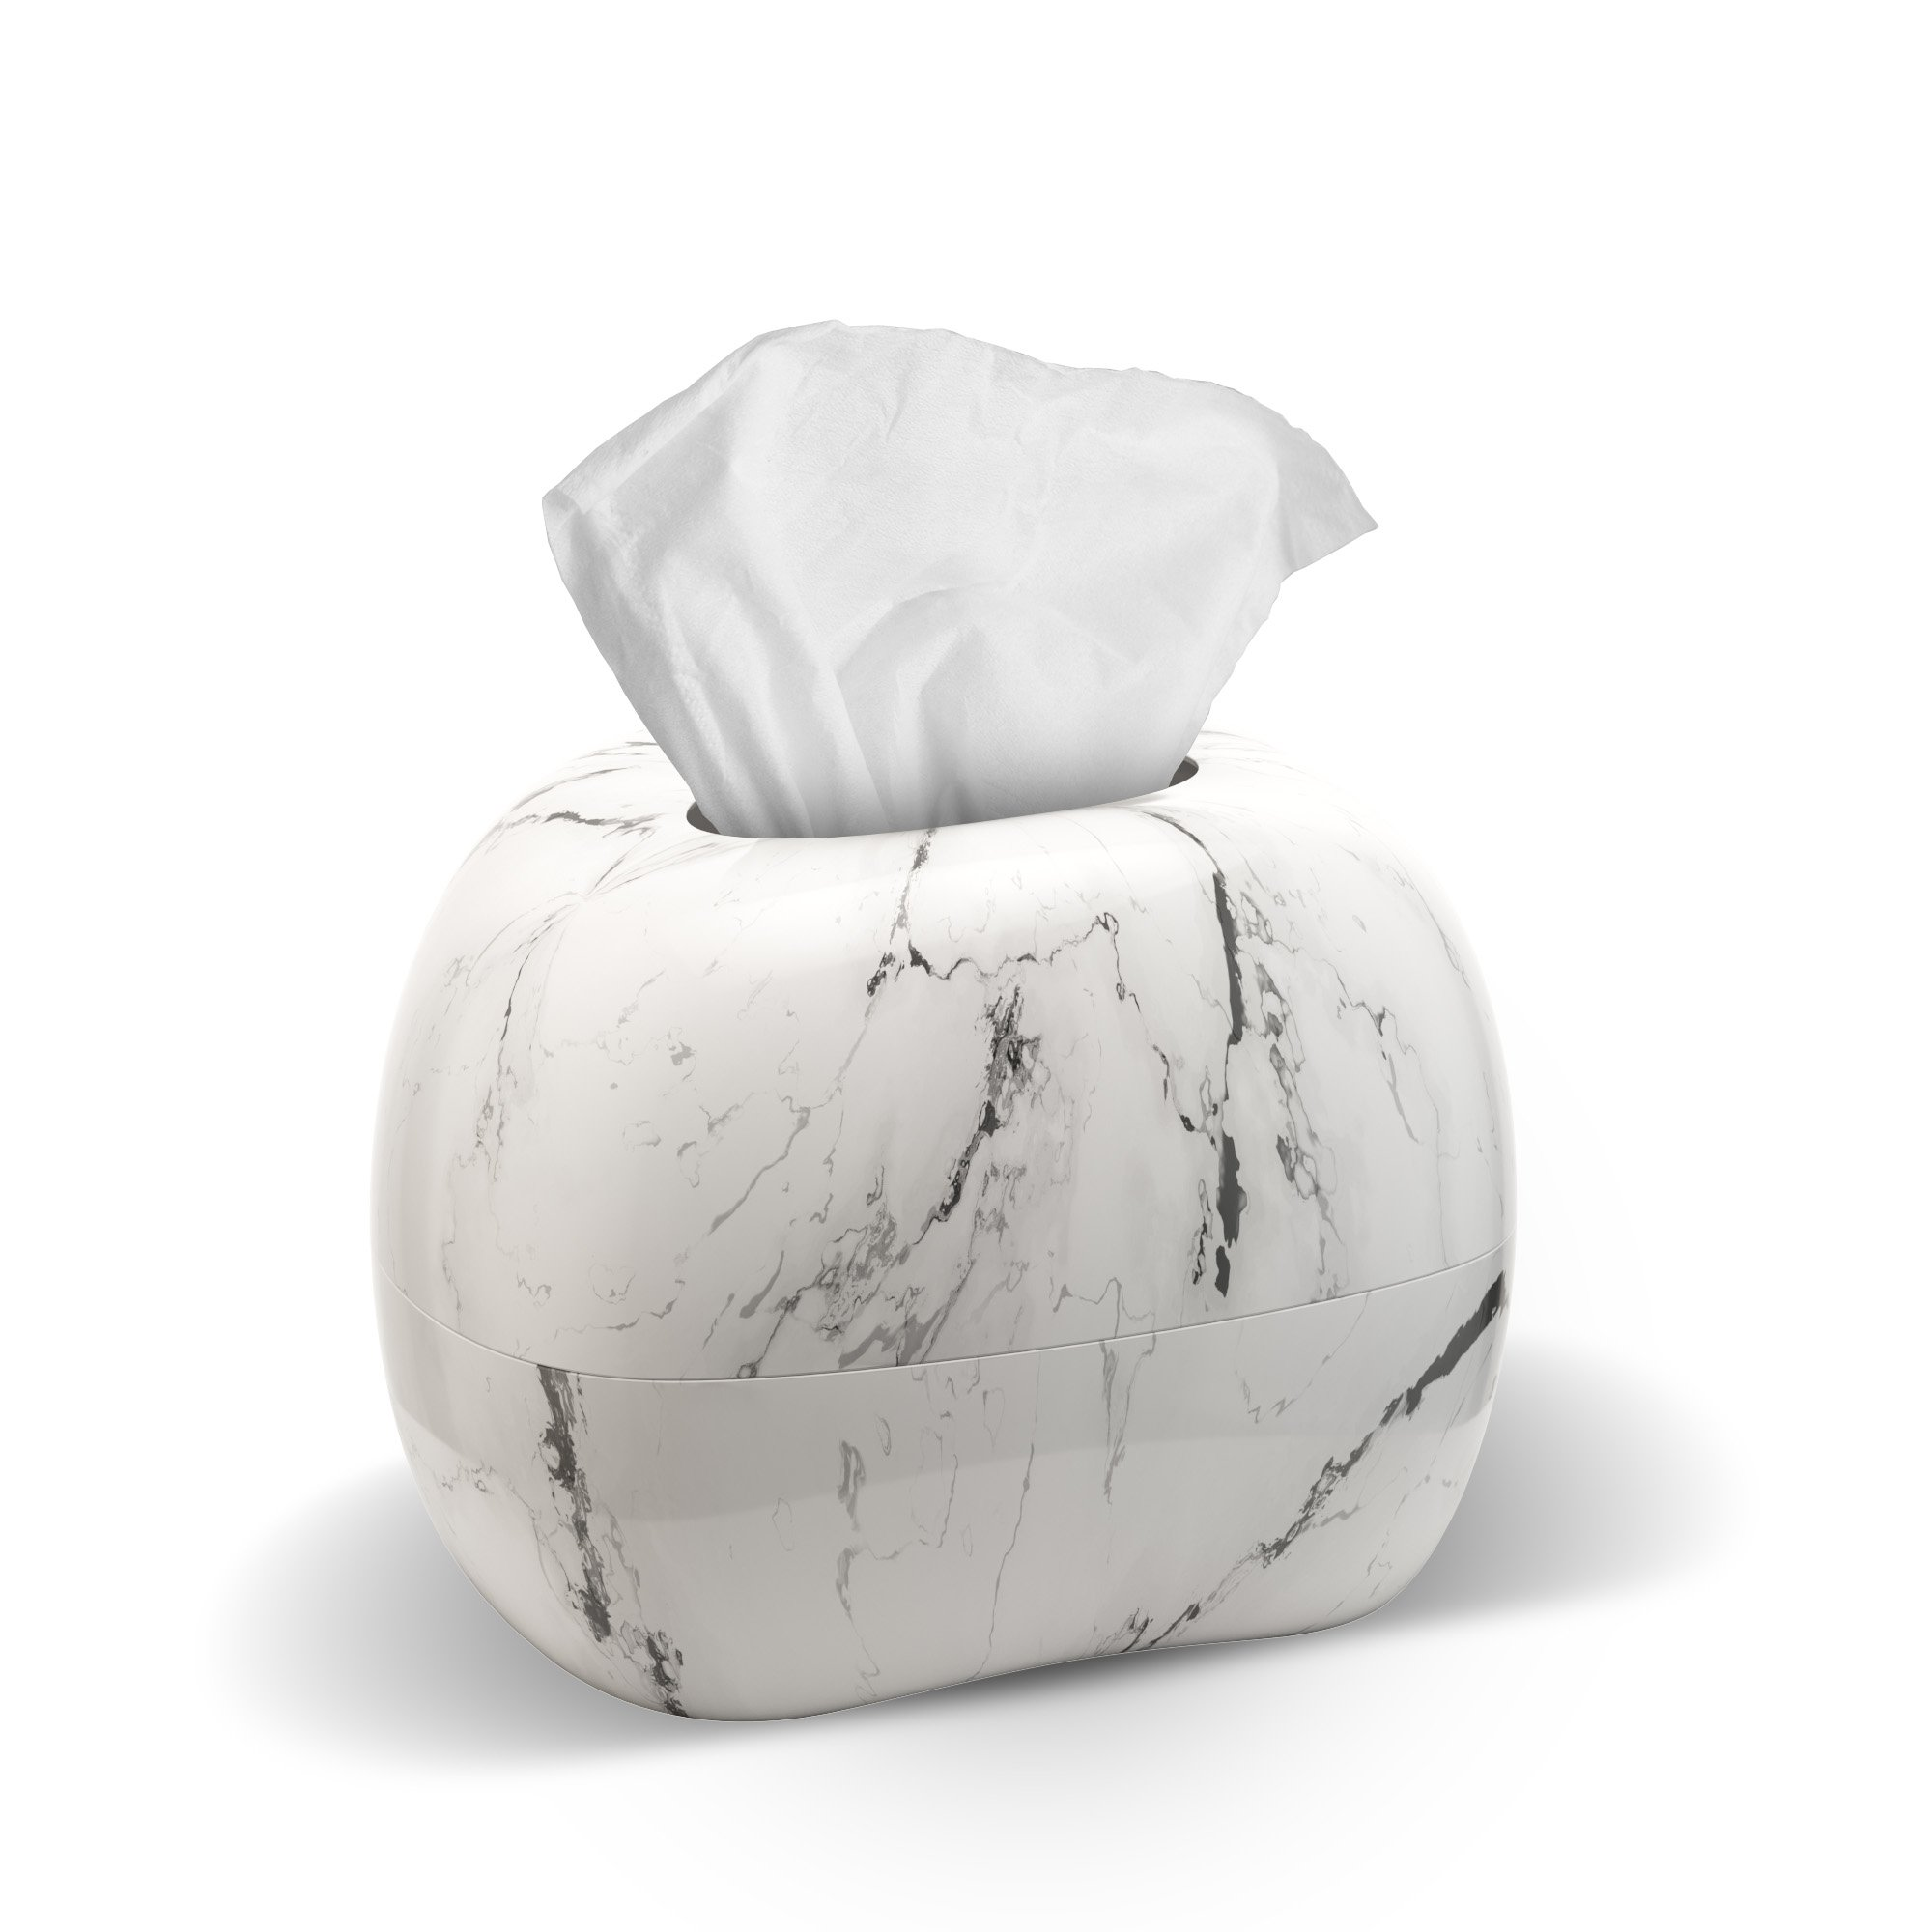 mordeco MIRRO Art Tissue Holder, White Marble Pattern, Fits in Any Kind of Tissue